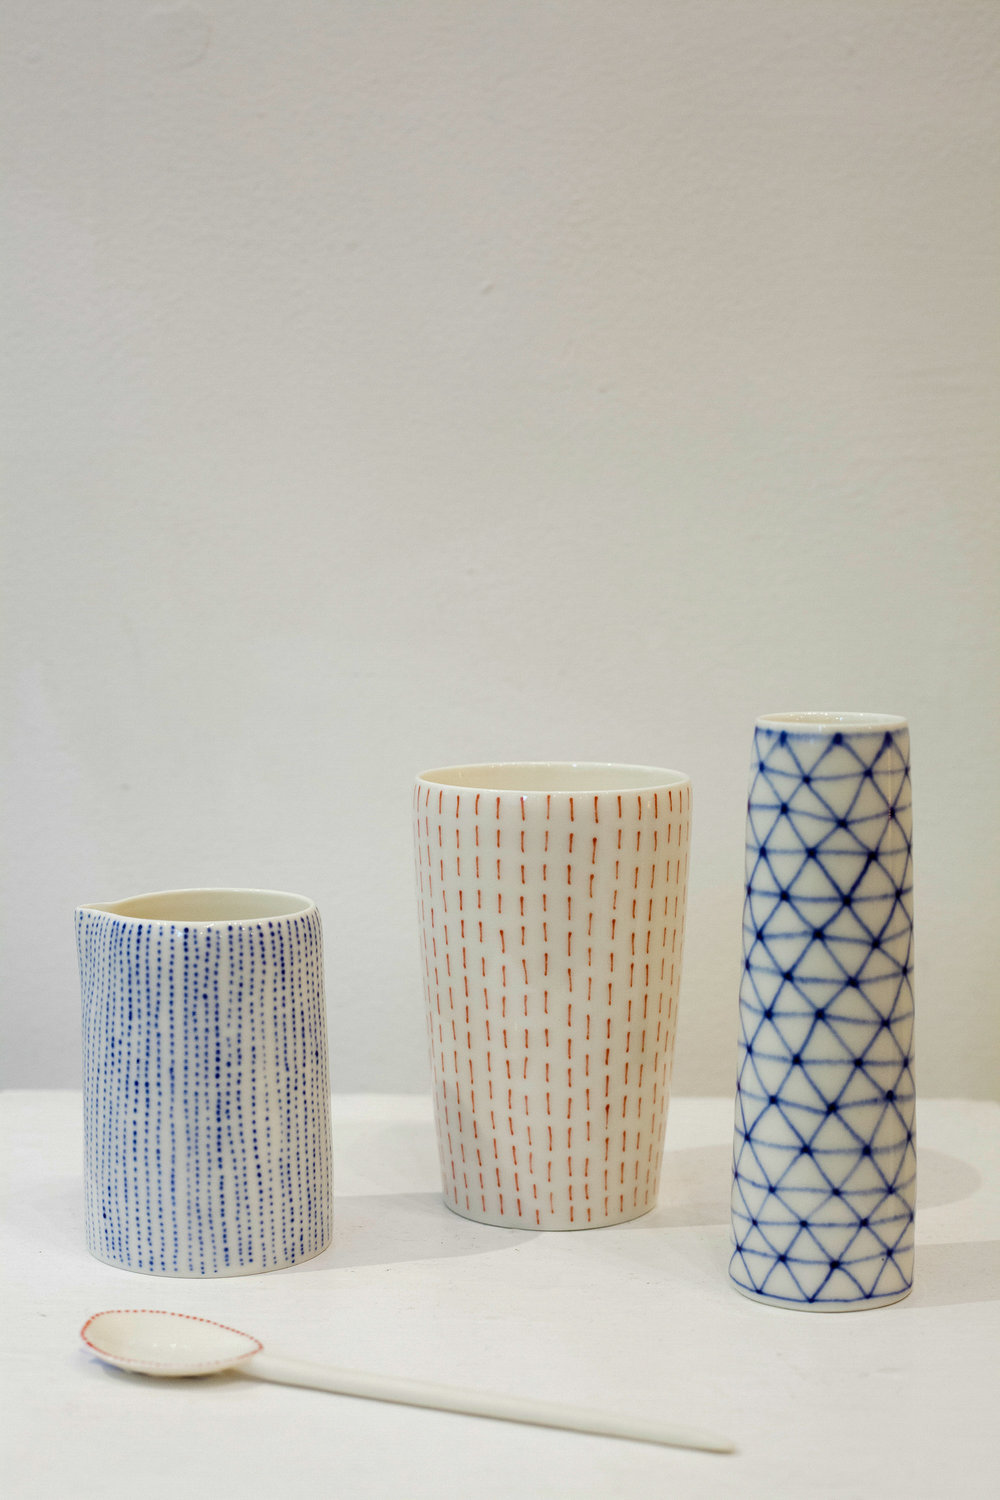 Tamsin Arrowsmith Brown Vessels £17-£60 bone china